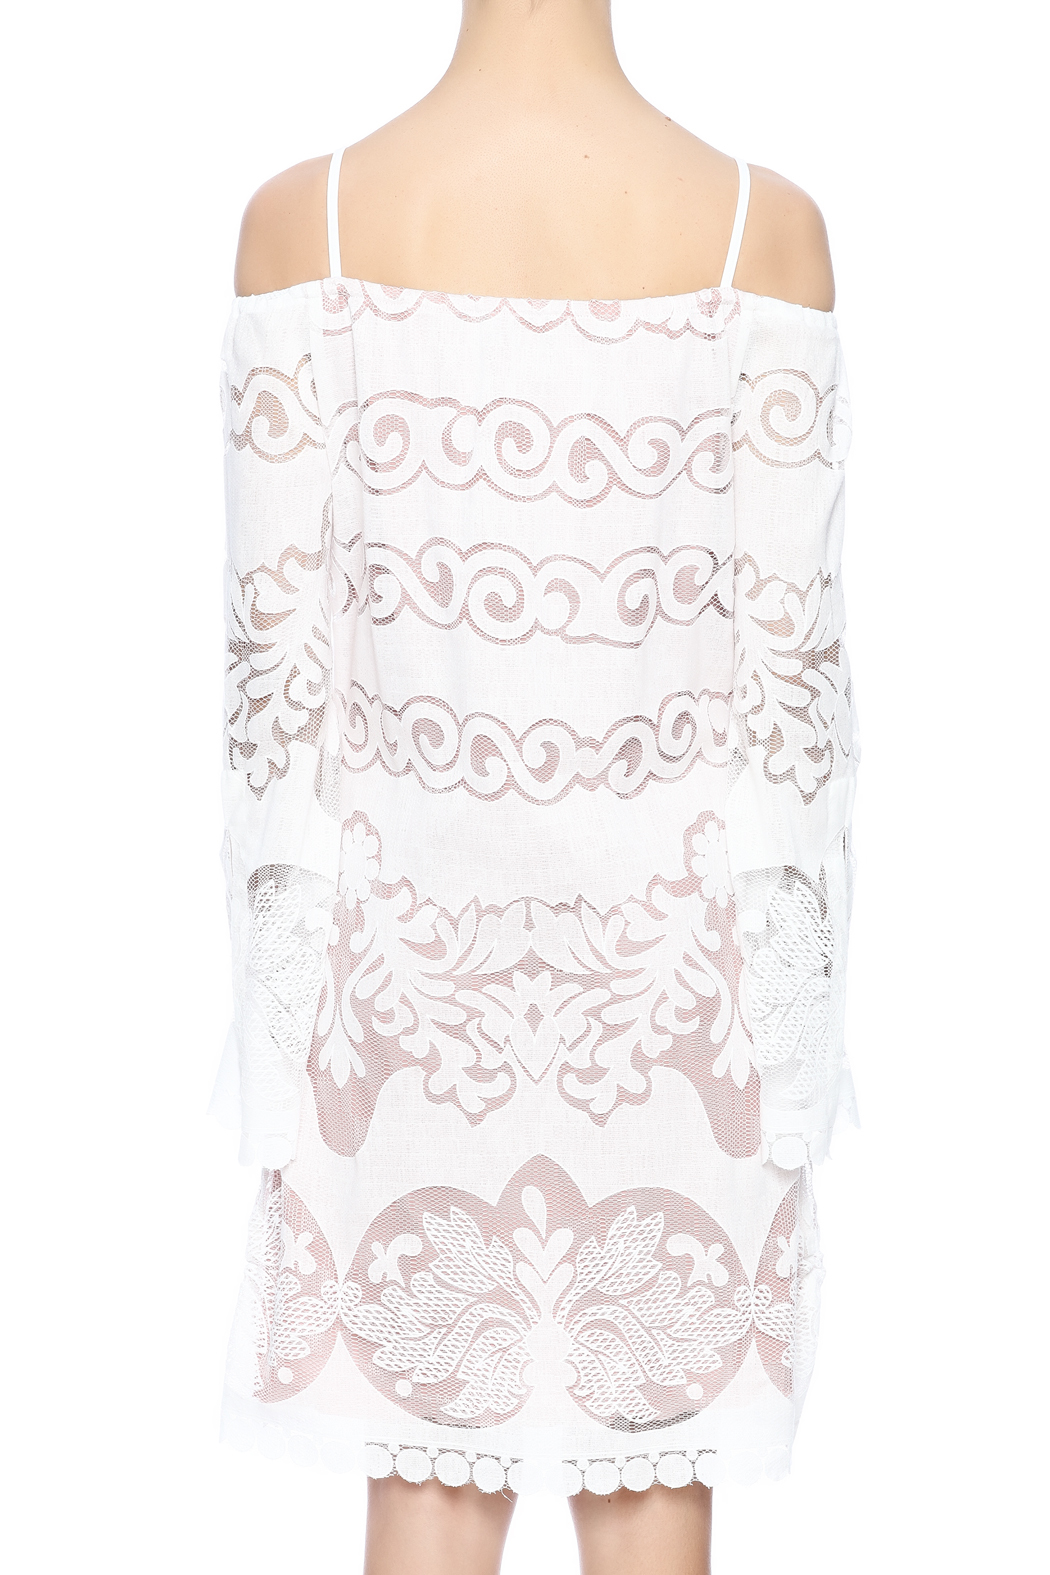 Union of Angels White Lace Dress - Back Cropped Image